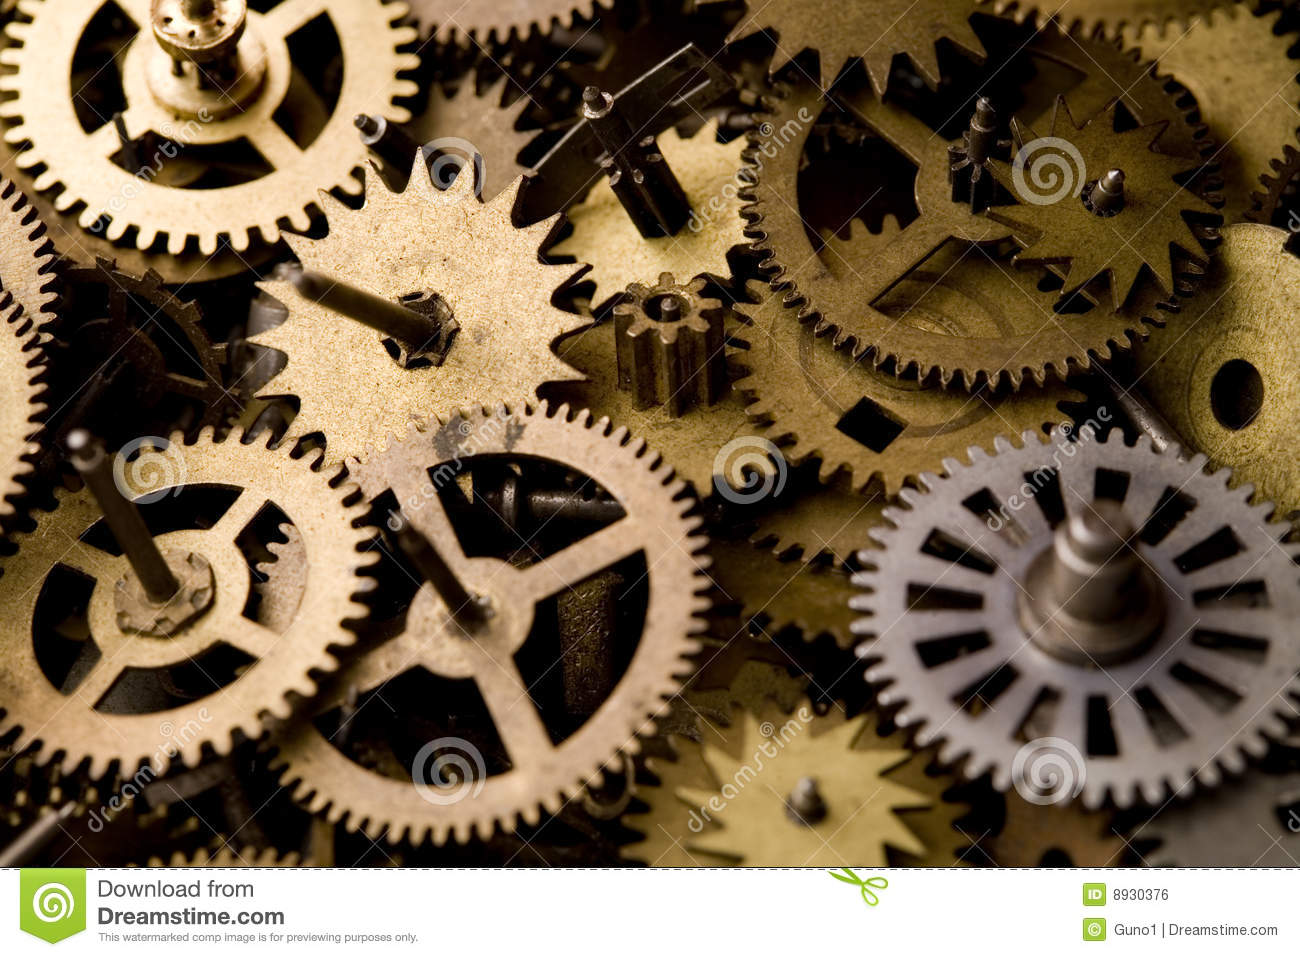 Parts Of Clocks Royalty Free Stock Image - Image: 8930376